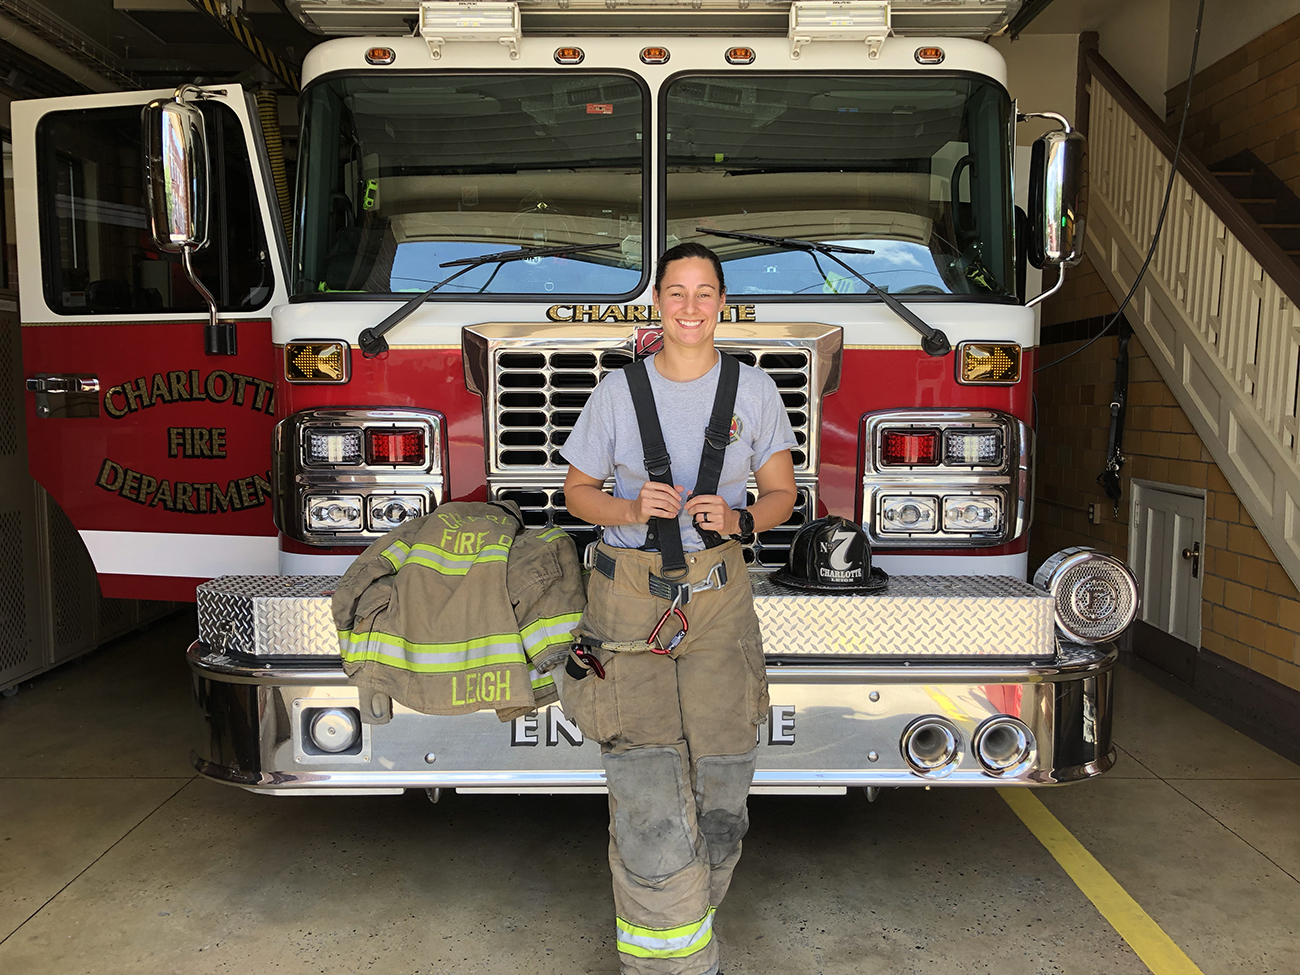 How I Work: 22 Quick Questions With Firefighter Amanda Leigh